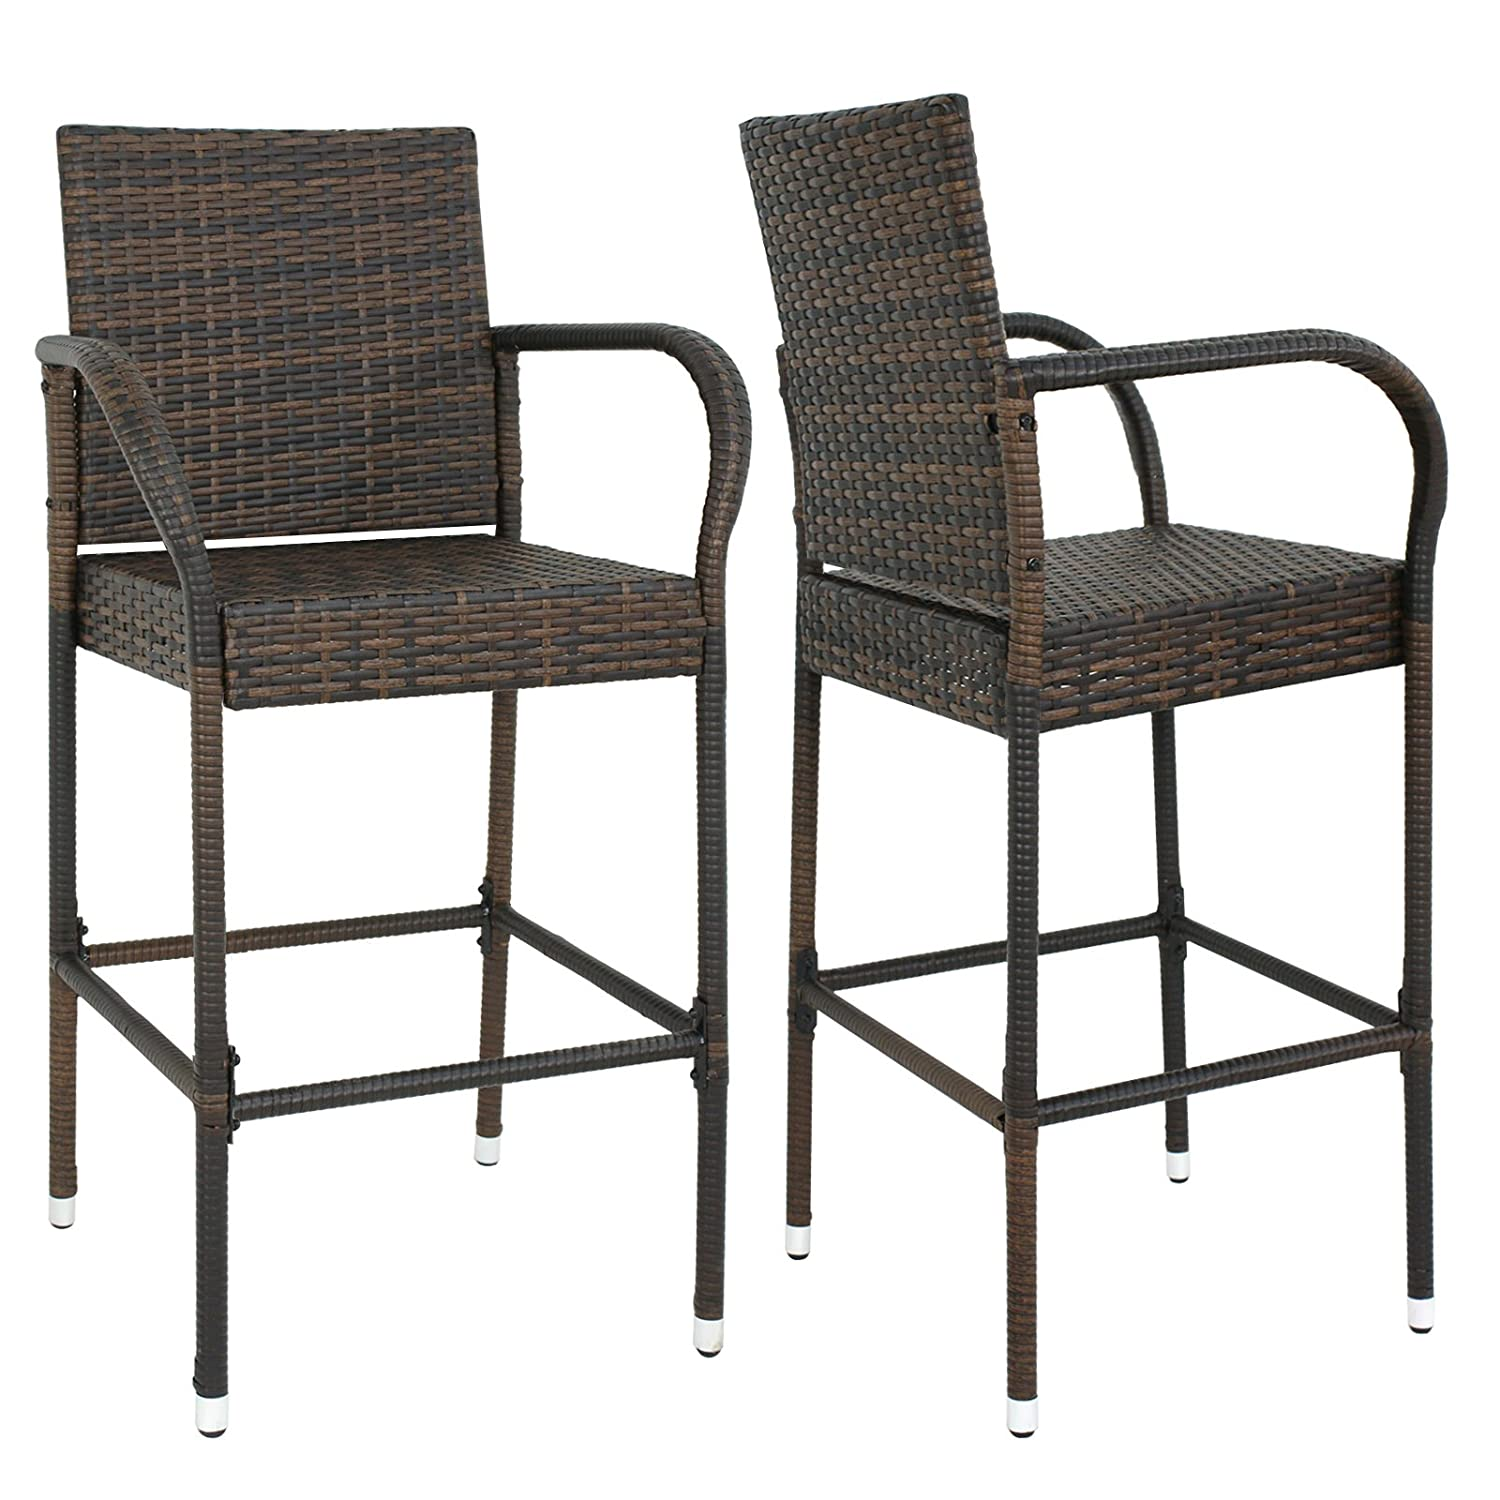 Nova Microdermabrasion Wicker Barstool Outdoor Patio Furniture Bar Stools All Weather Rattan Chair w Armrest and Footrest for Garden Pool Lawn Porch Backyard, Set of 2